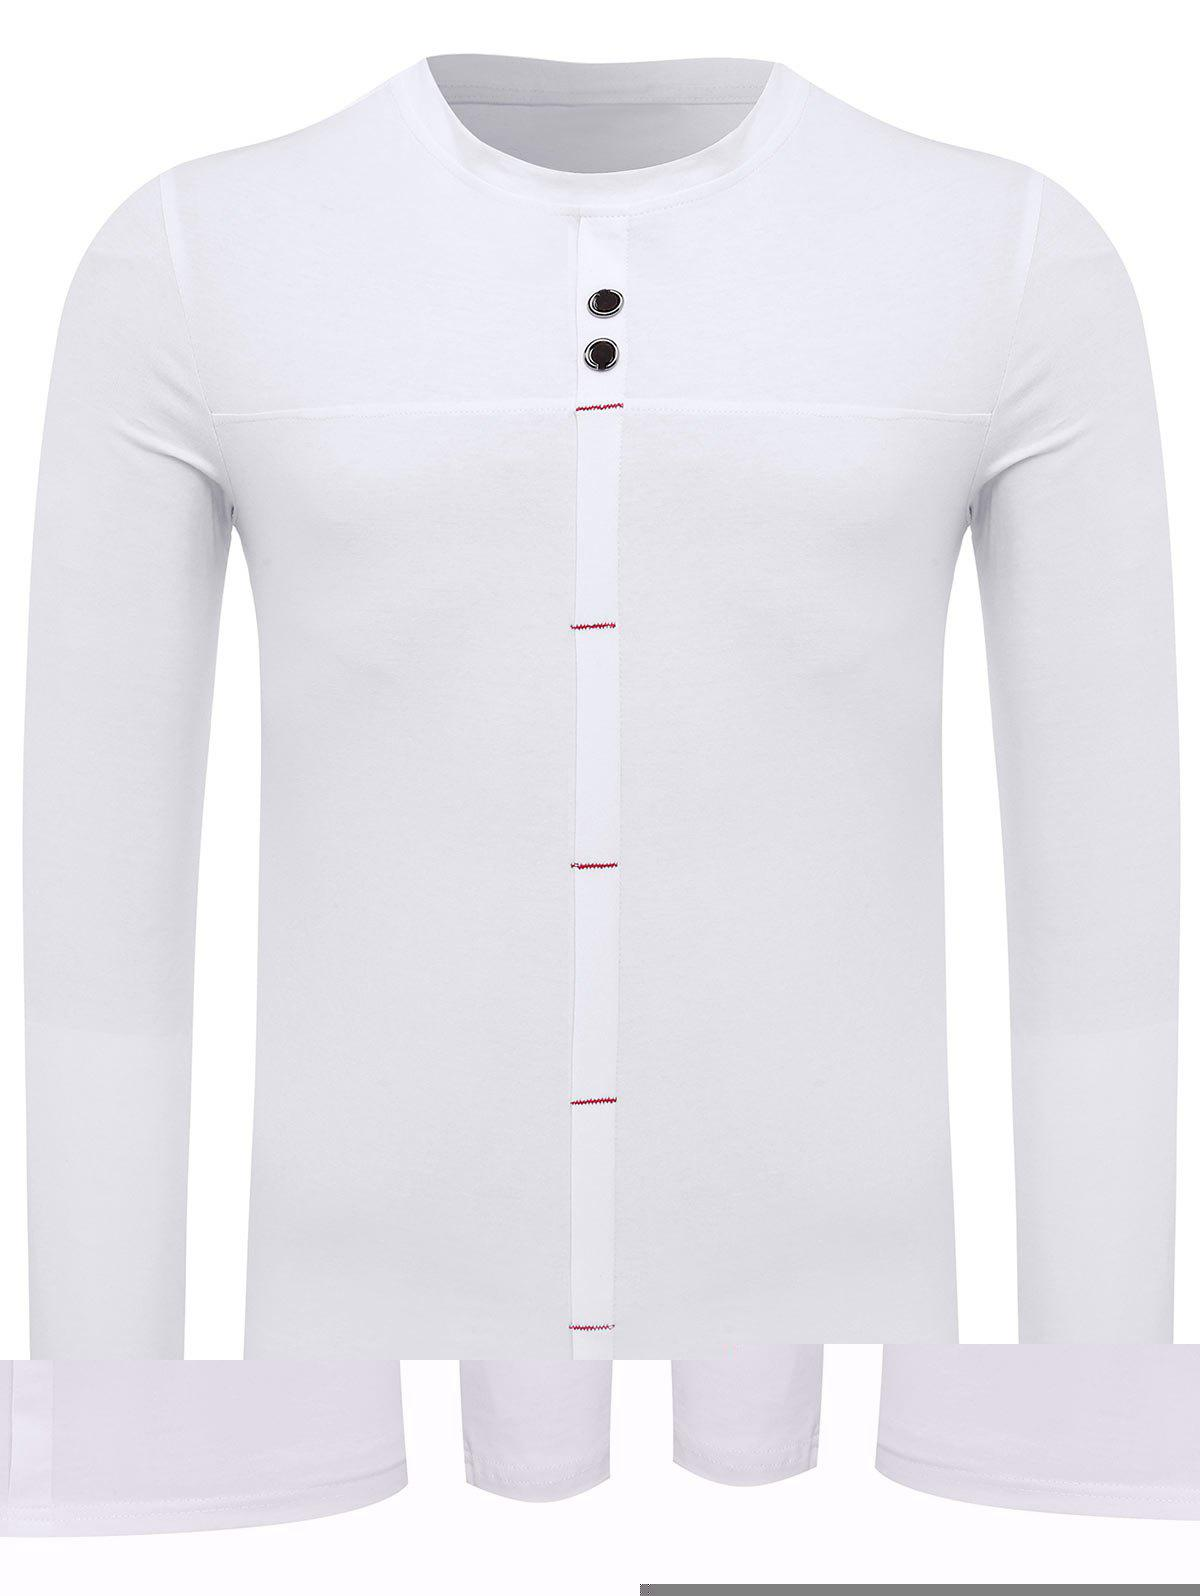 Crew Neck Long Sleeve Button Embellished Tee crew neck button embellished tee